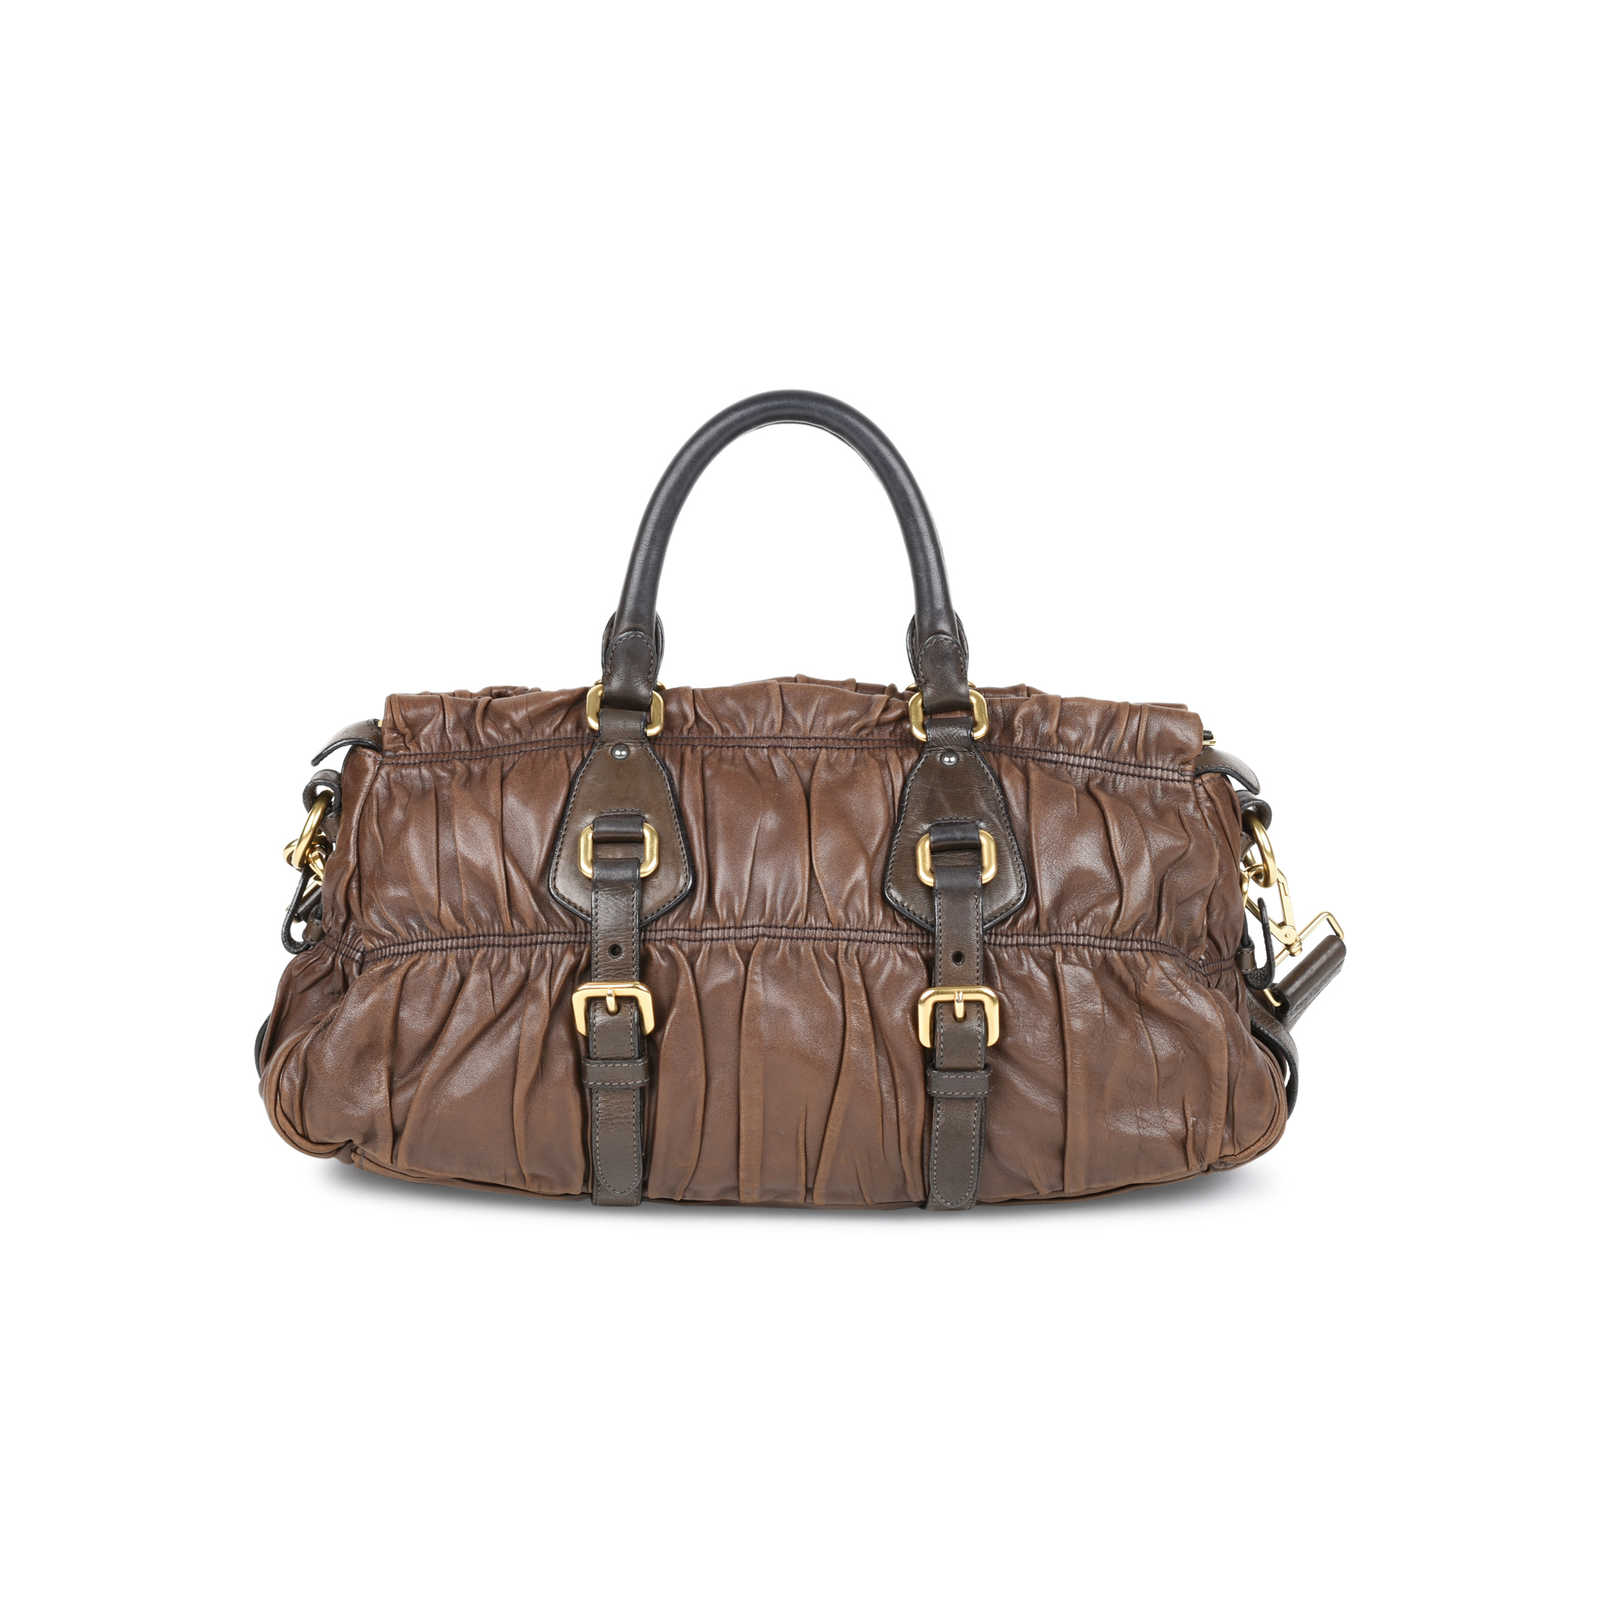 546ff51d17b7 ... Authentic Second Hand Prada Gaufre Nappa Leather Bag (PSS-499-00001) ...